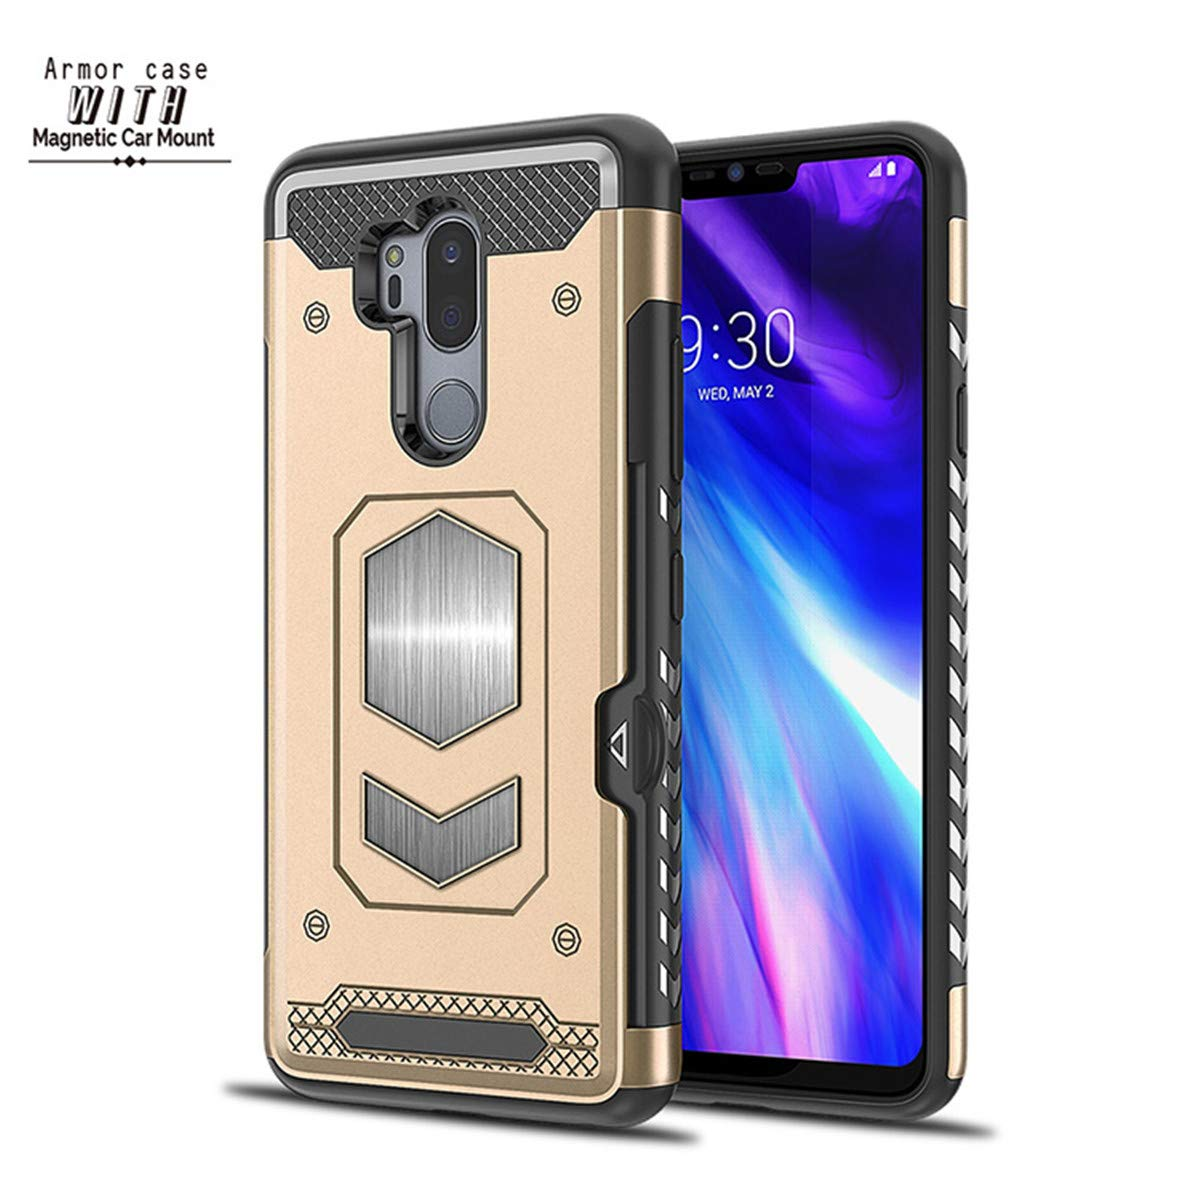 Case for LG G6 G7, Magnetic Dual Layer Military Armor Series Car Mount Card Holder Phone Case for LG G7 ThinQ